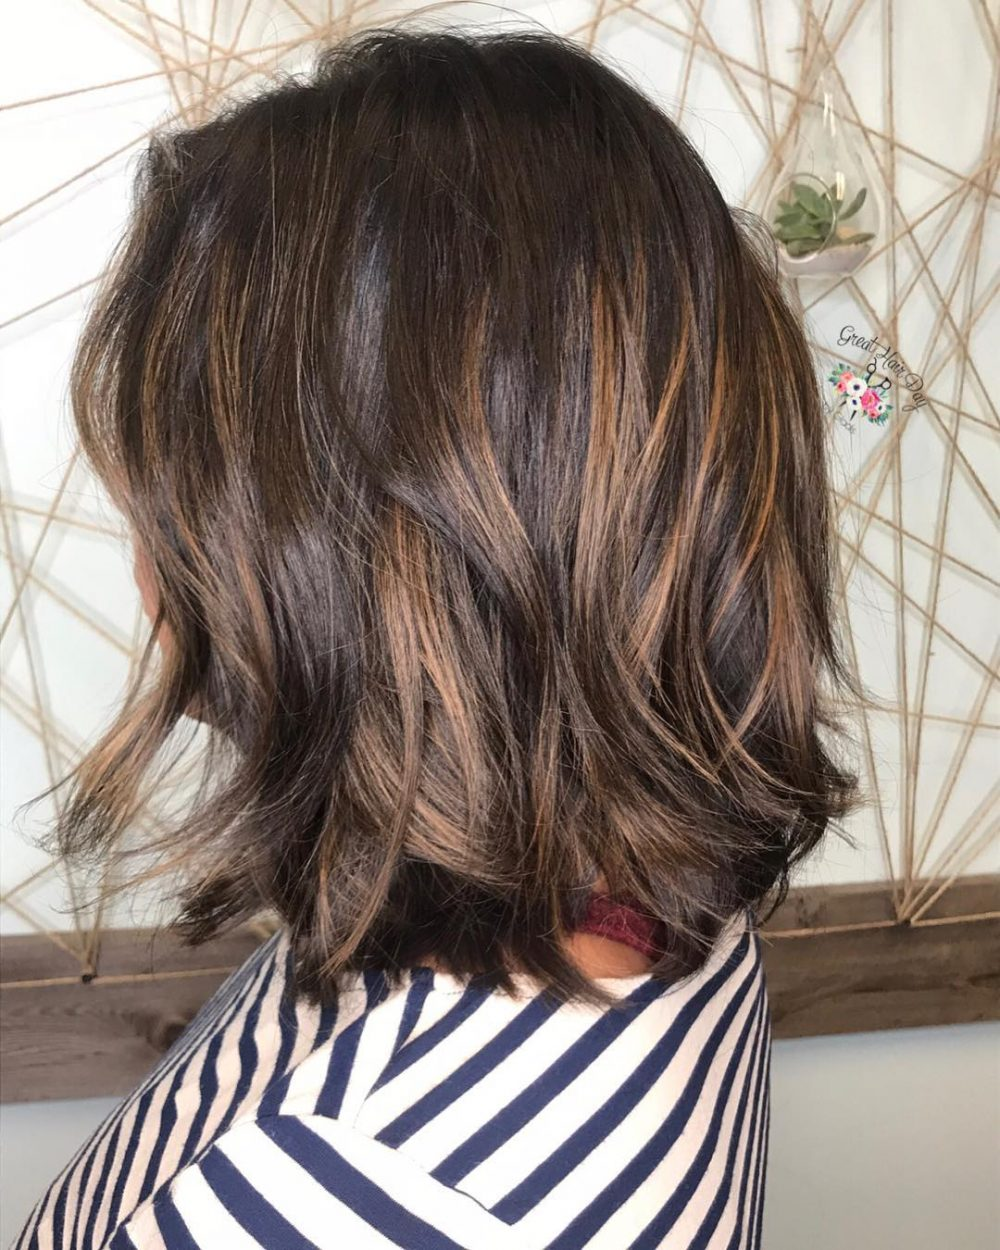 Naturally Black Hair To Brown